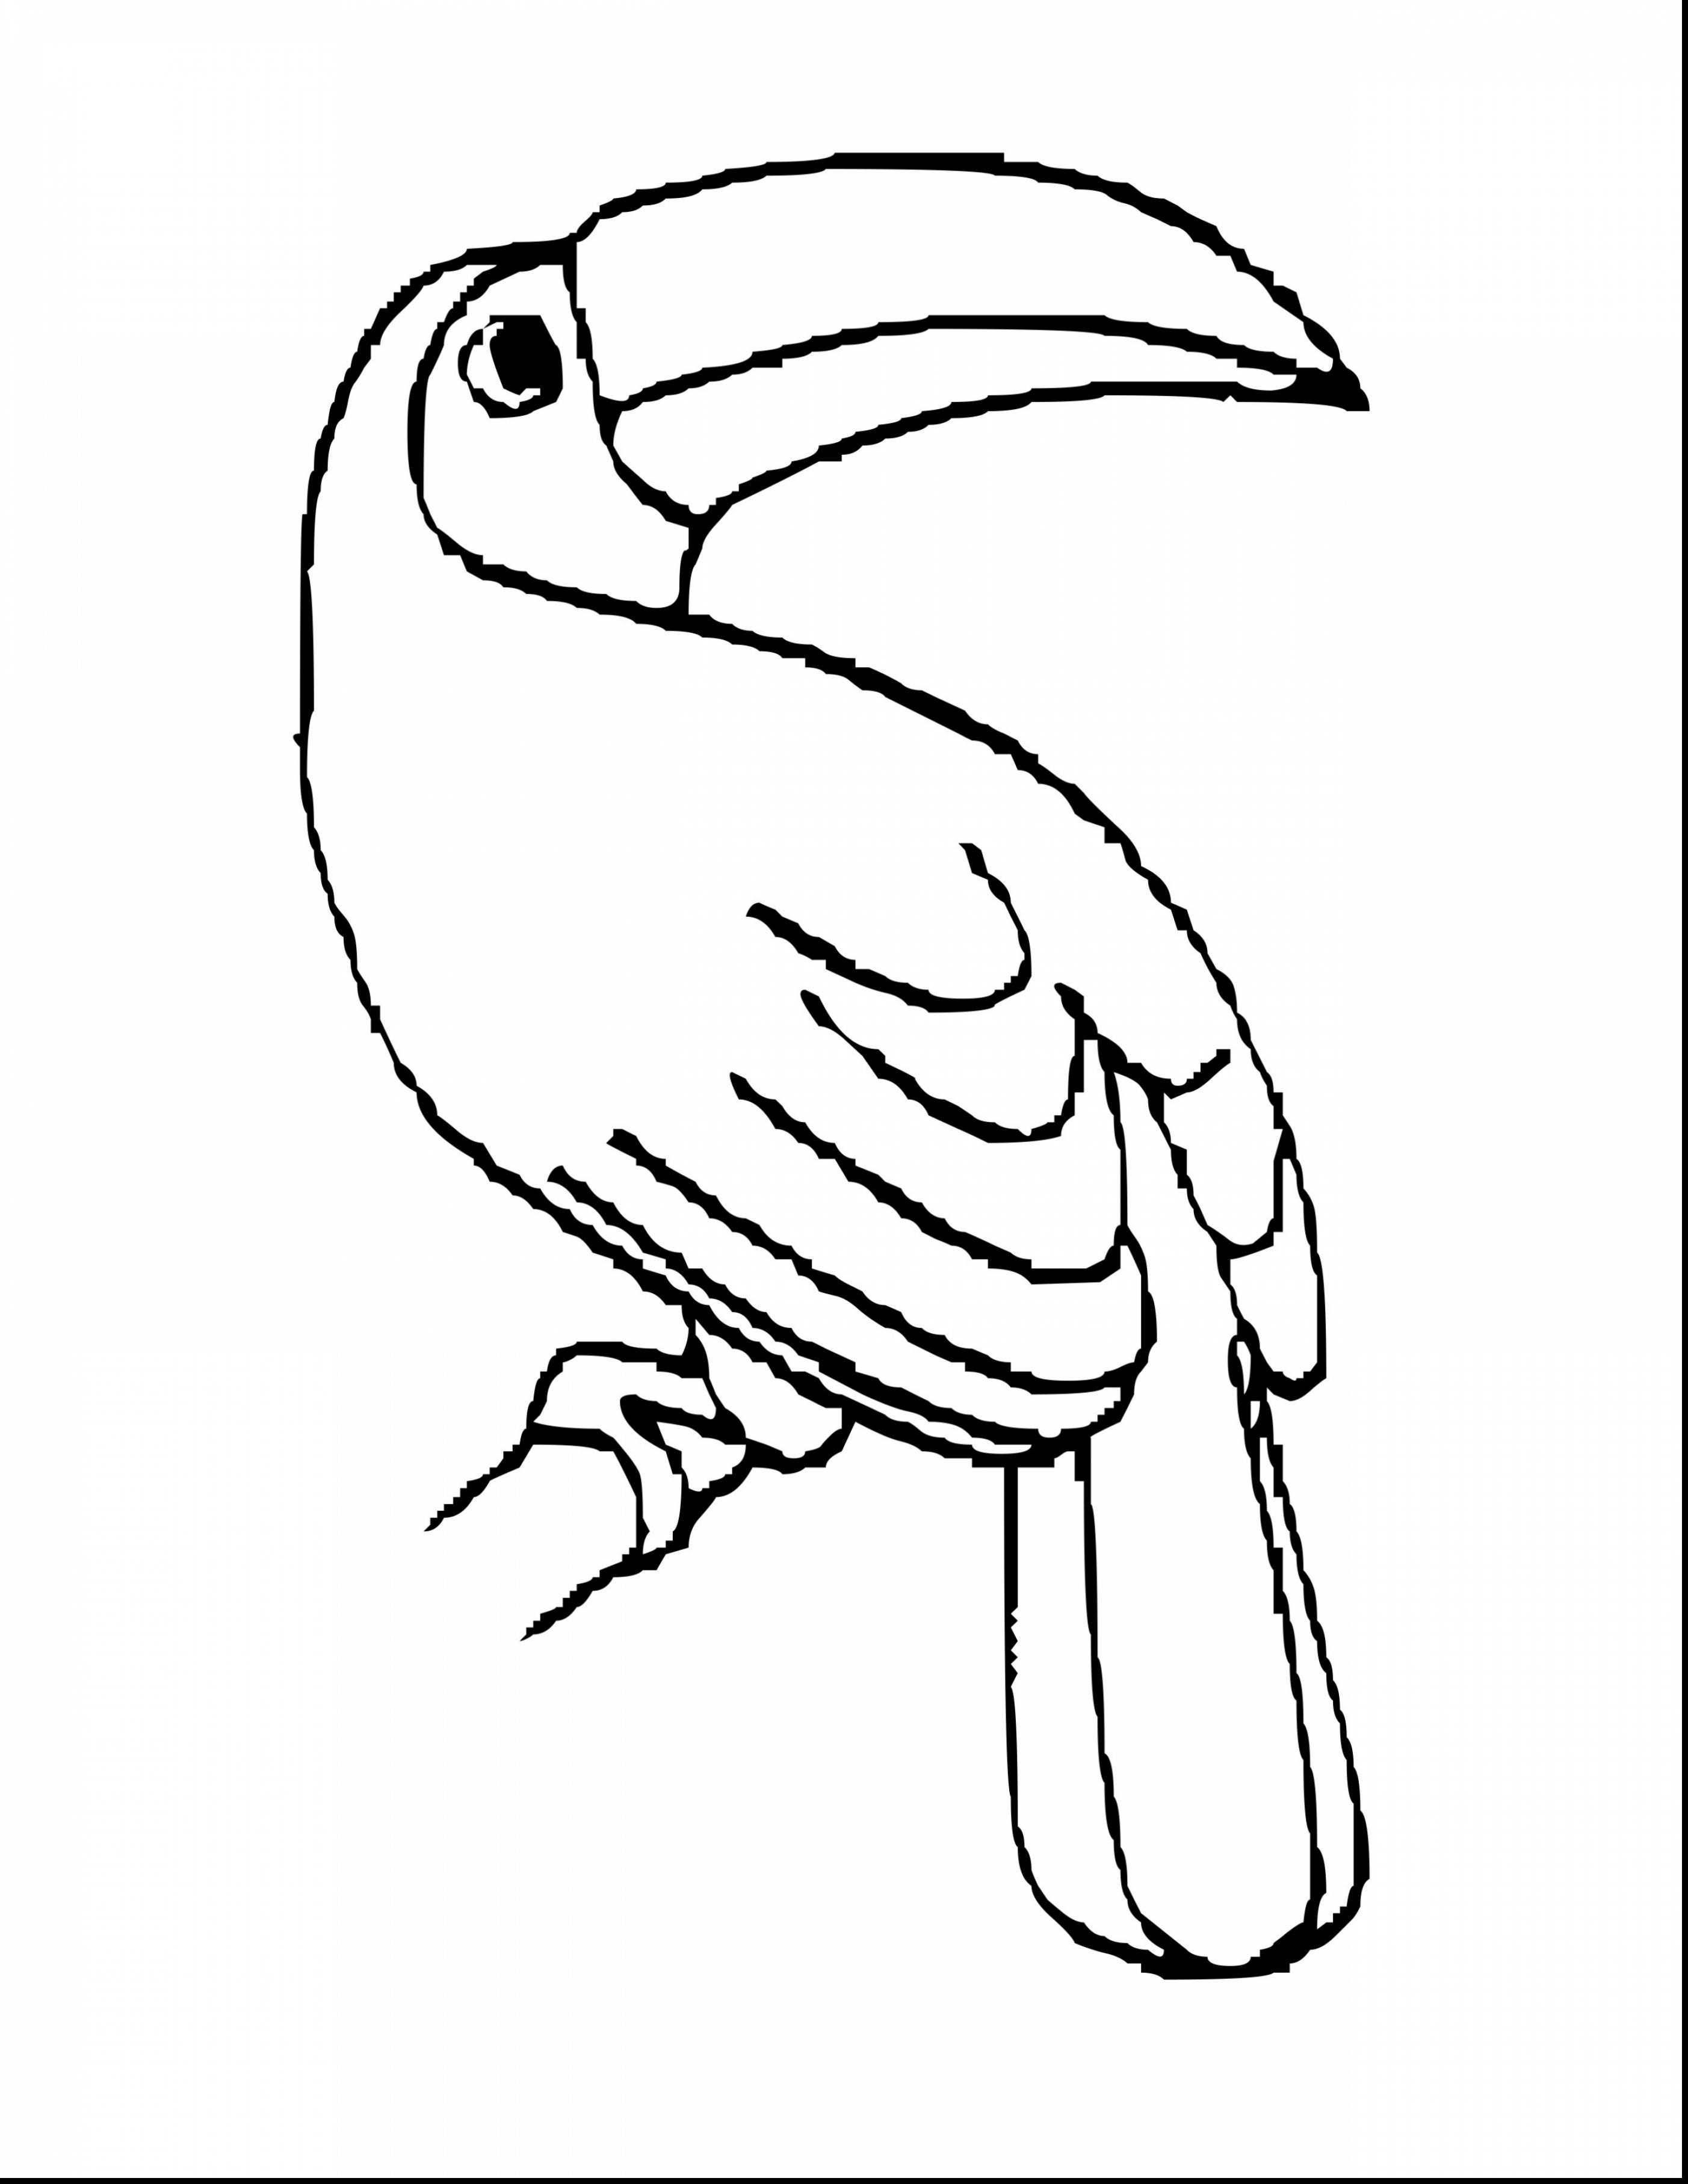 2805x3630 Inspiration Coloring Pages Of Birds In The Rainforest